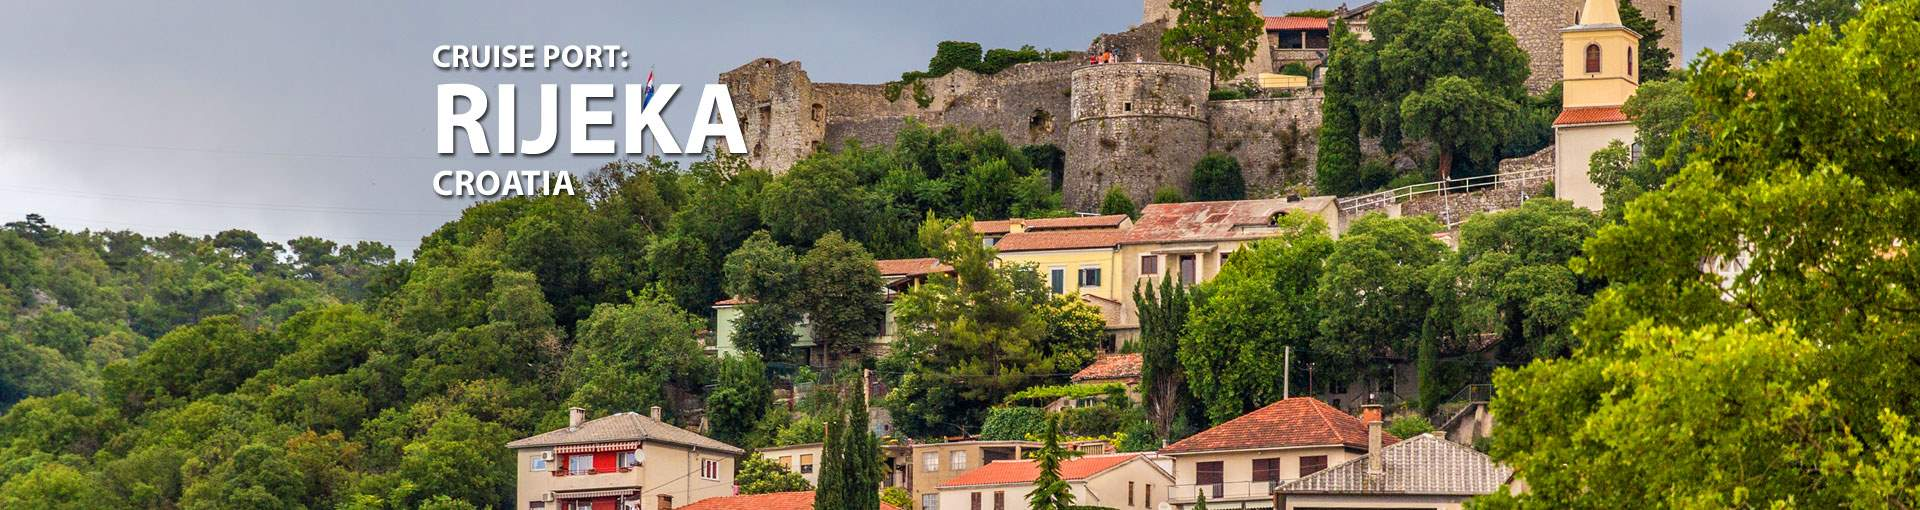 Rijeka Croatia Cruise Port 2018 And 2019 Cruises To